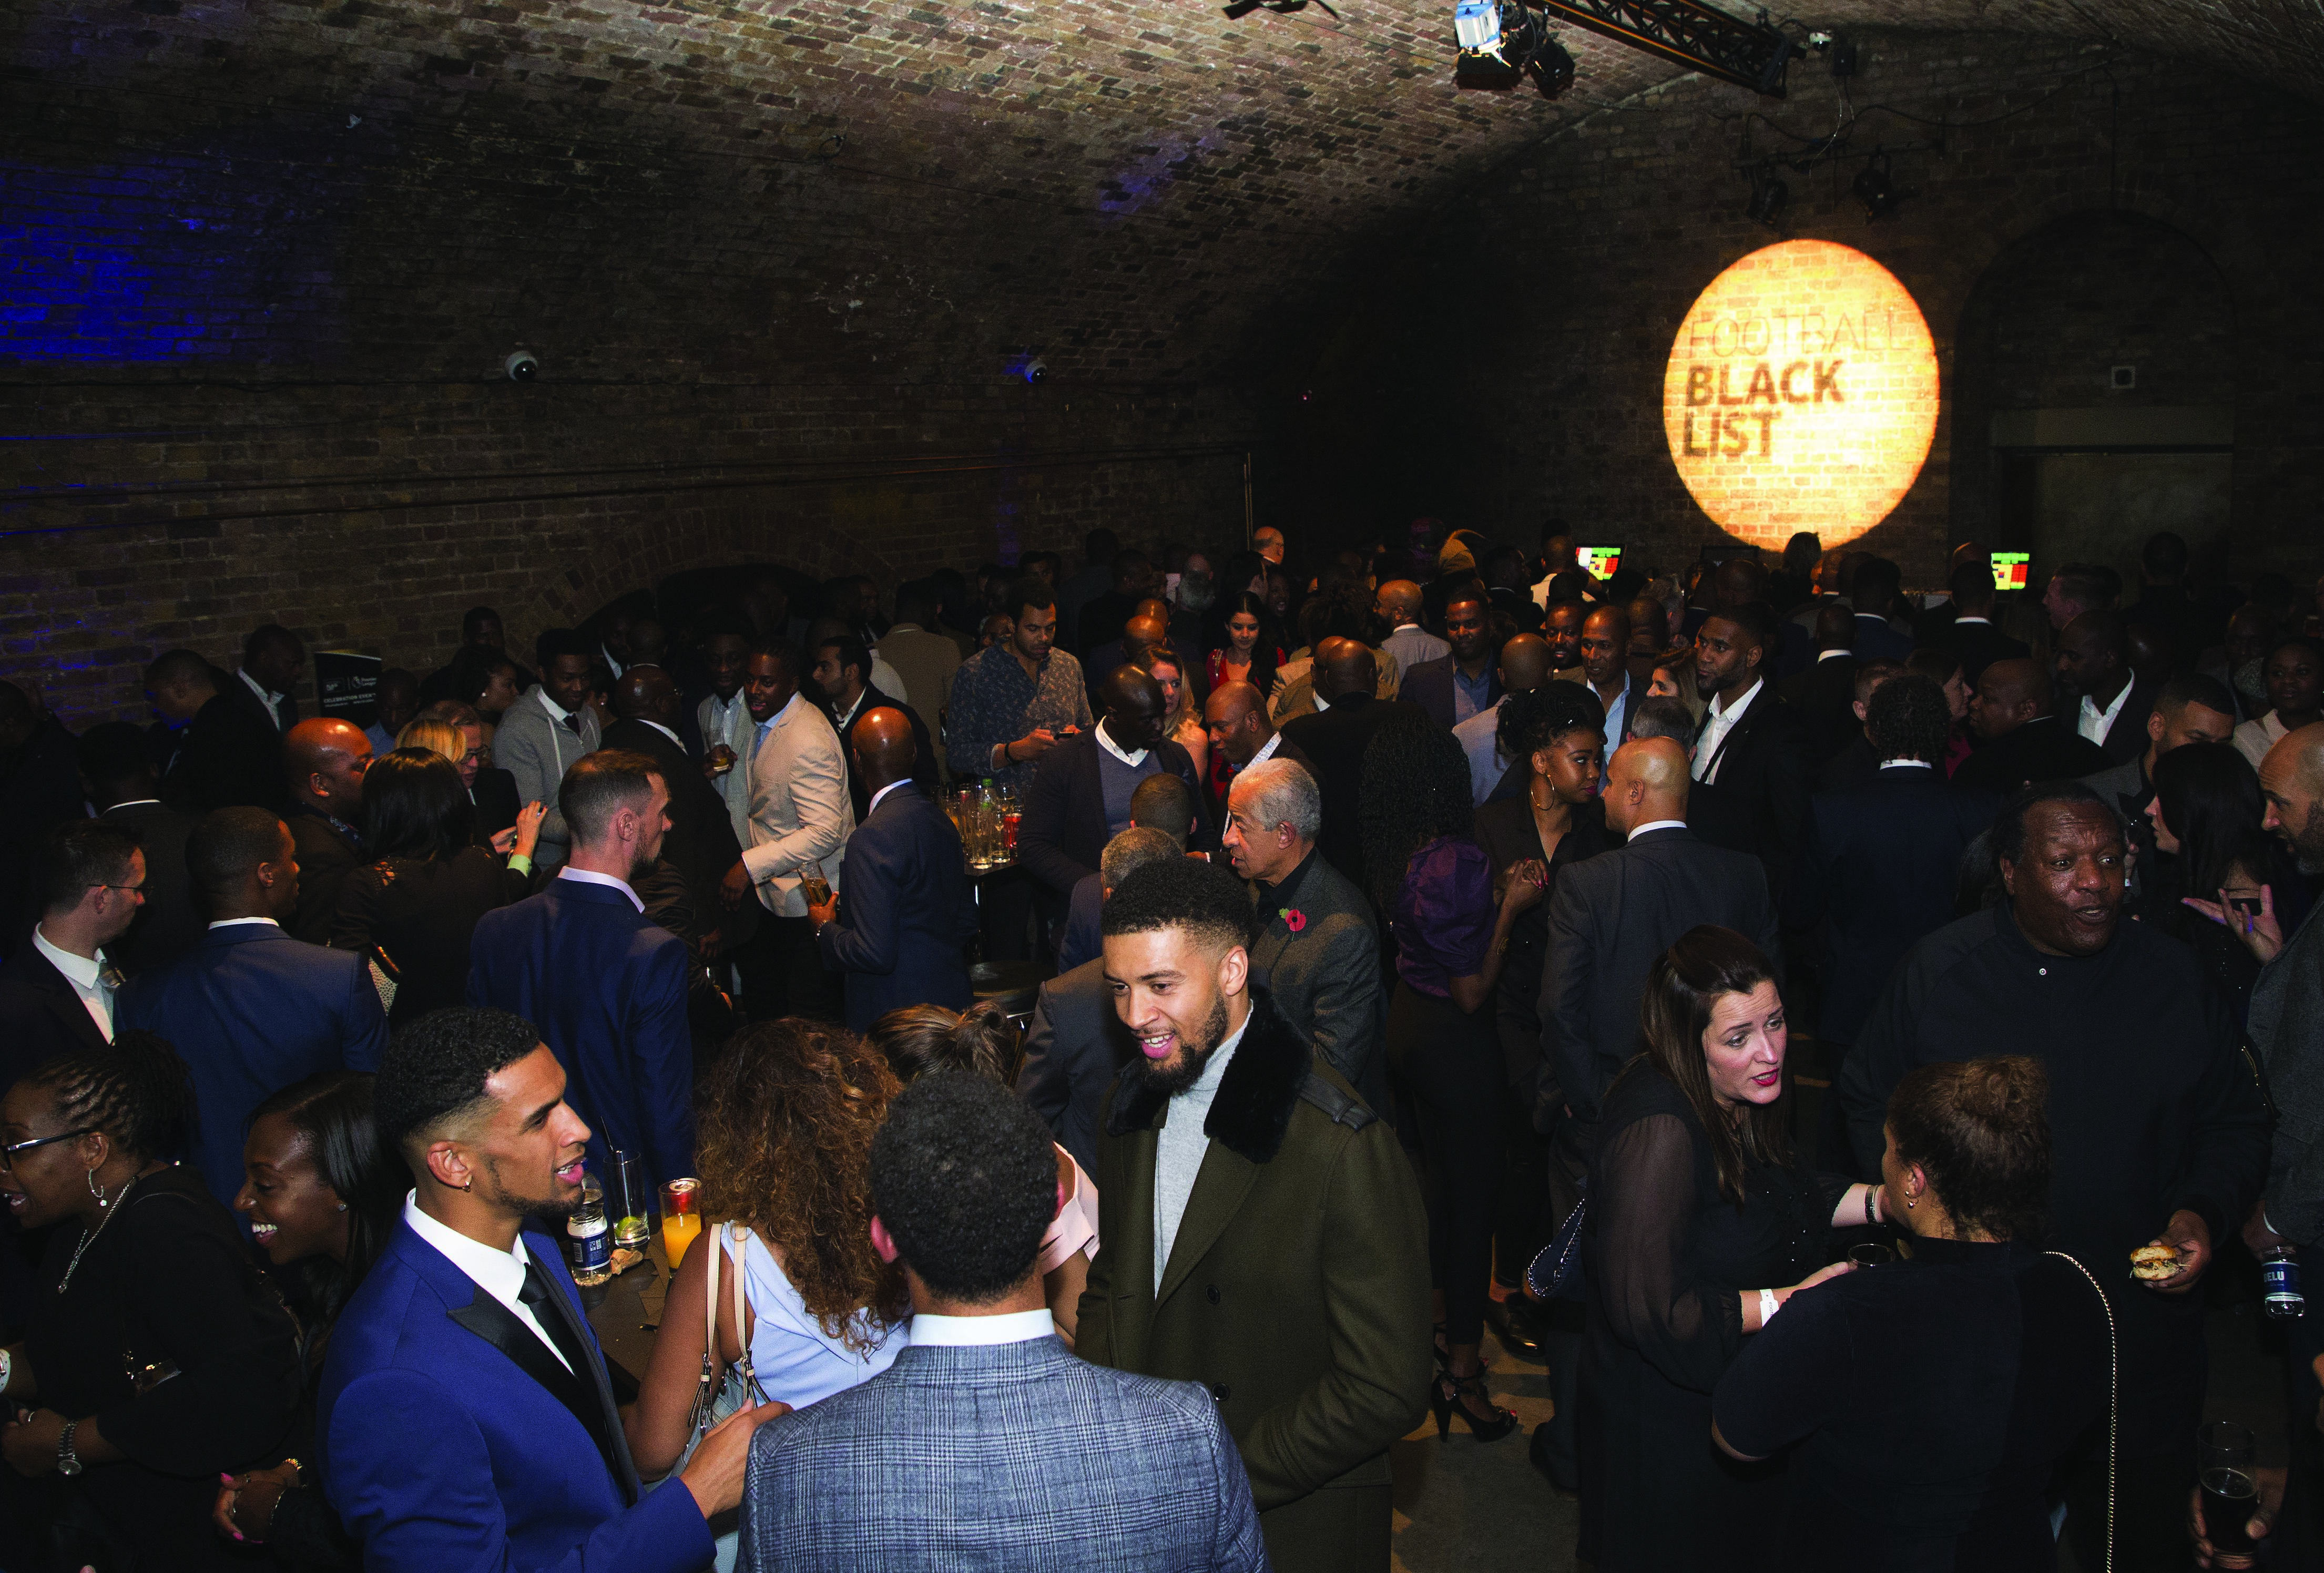 LONDON, ENGLAND - NOVEMBER 08: Guests at The Black Football List Celebration on November 8, 2017 in London, England. (Photo by Henry Browne/Getty Images for Premier League)